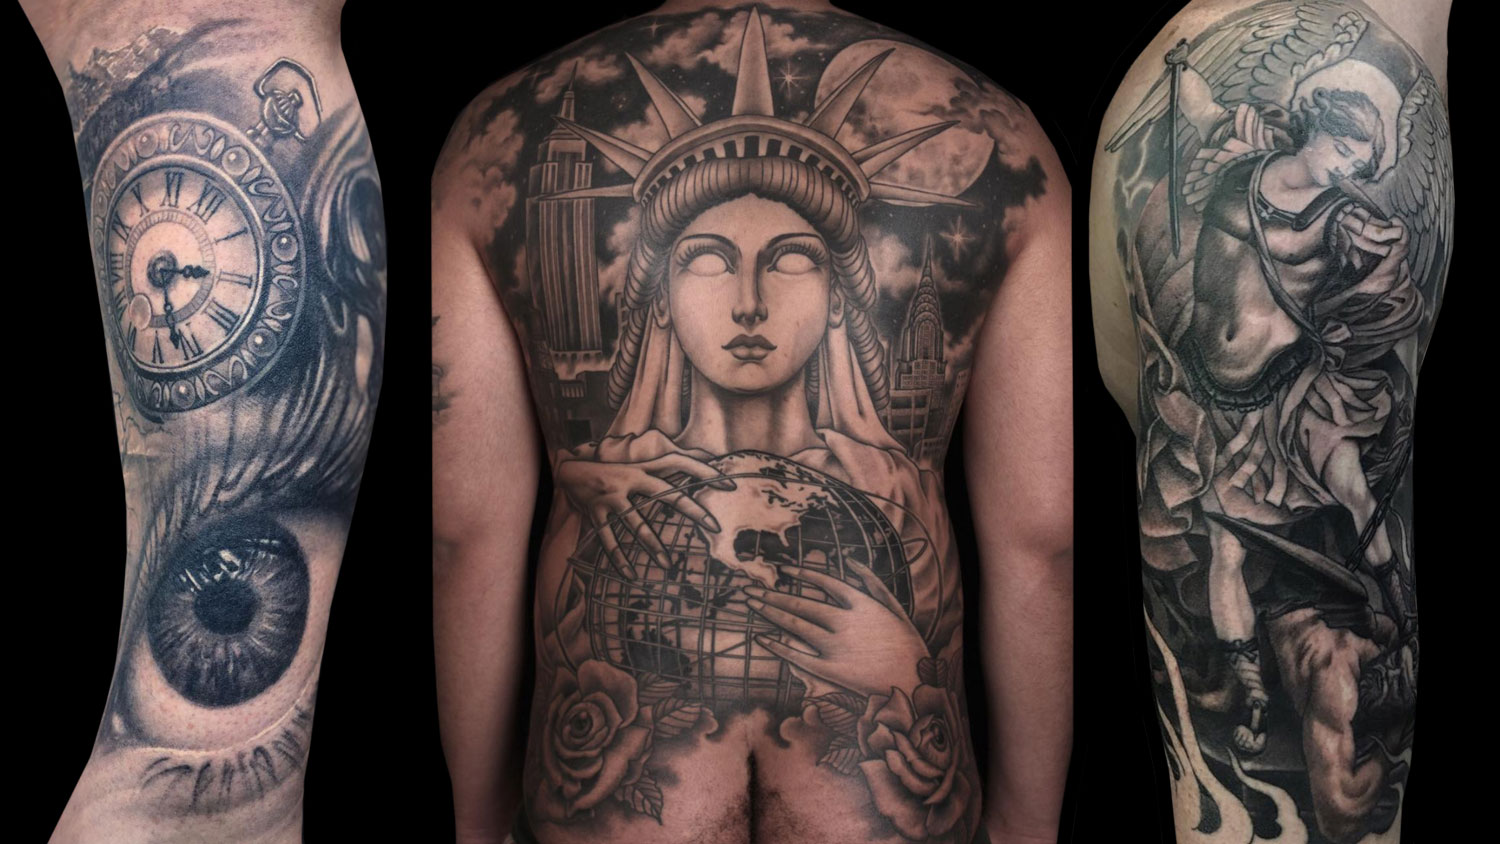 9 Tattoo Artists that Specialize in Black and Grey Tattoos